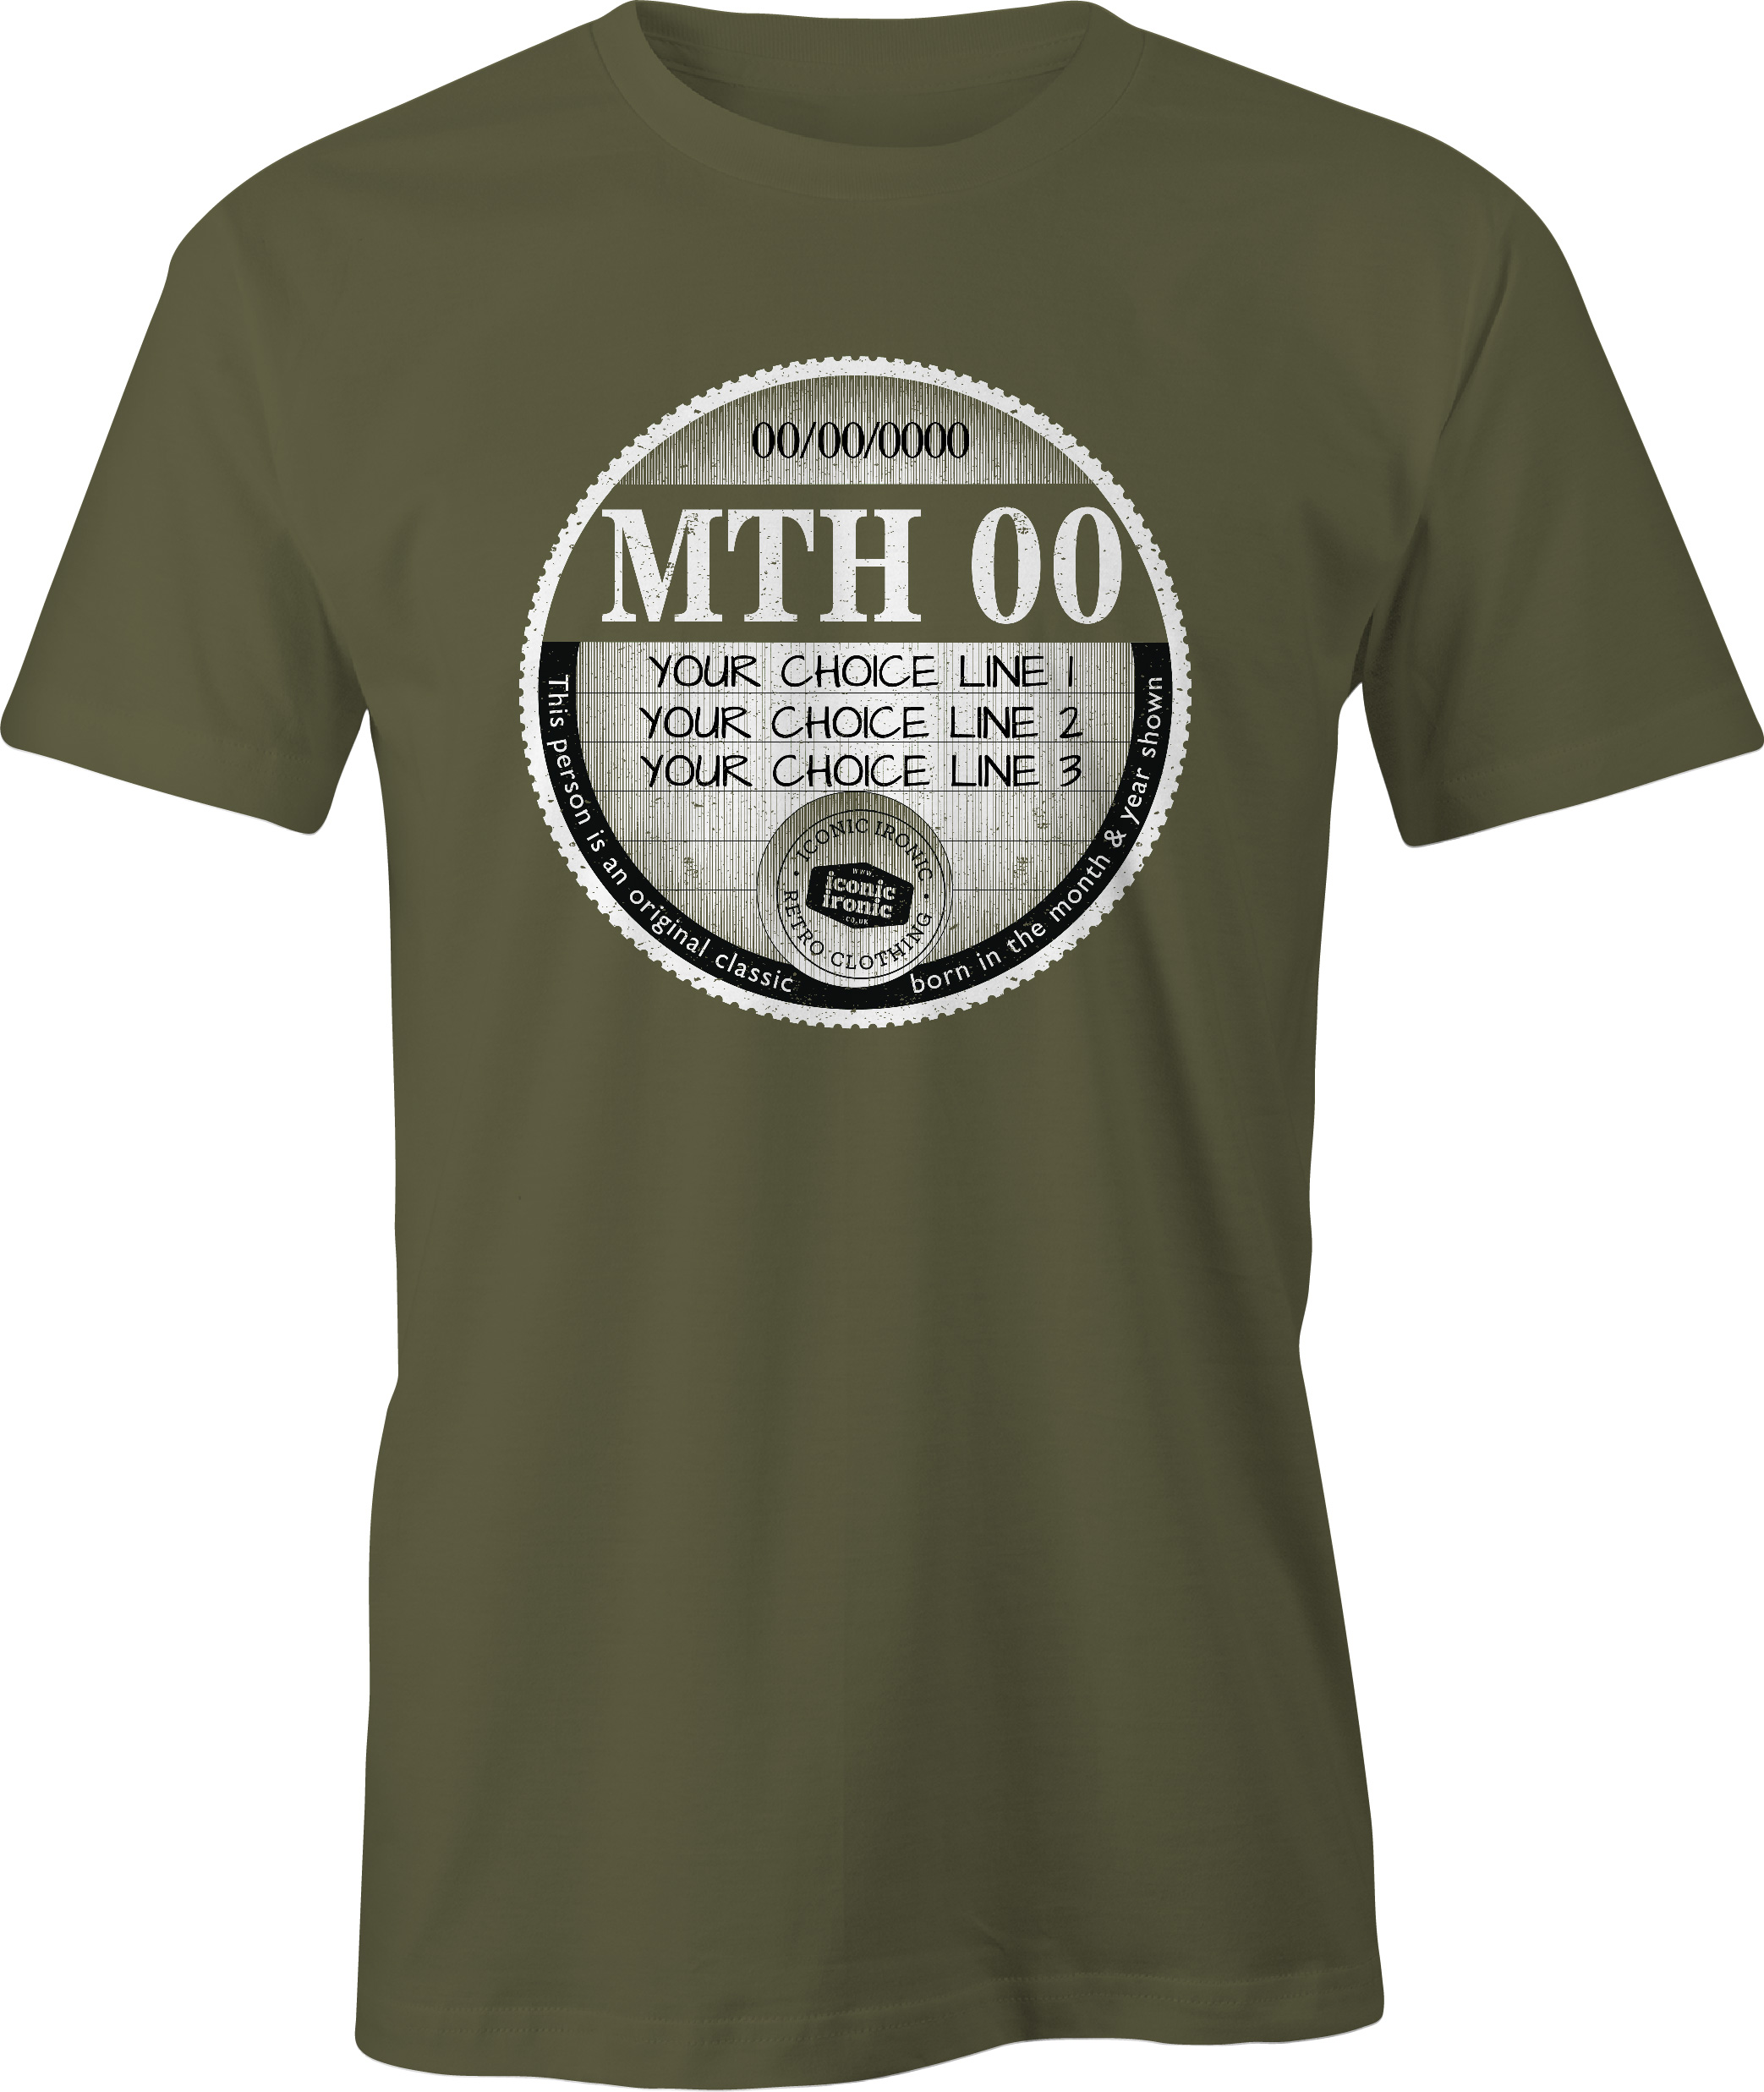 Military green car tax t-shirt with large graphic